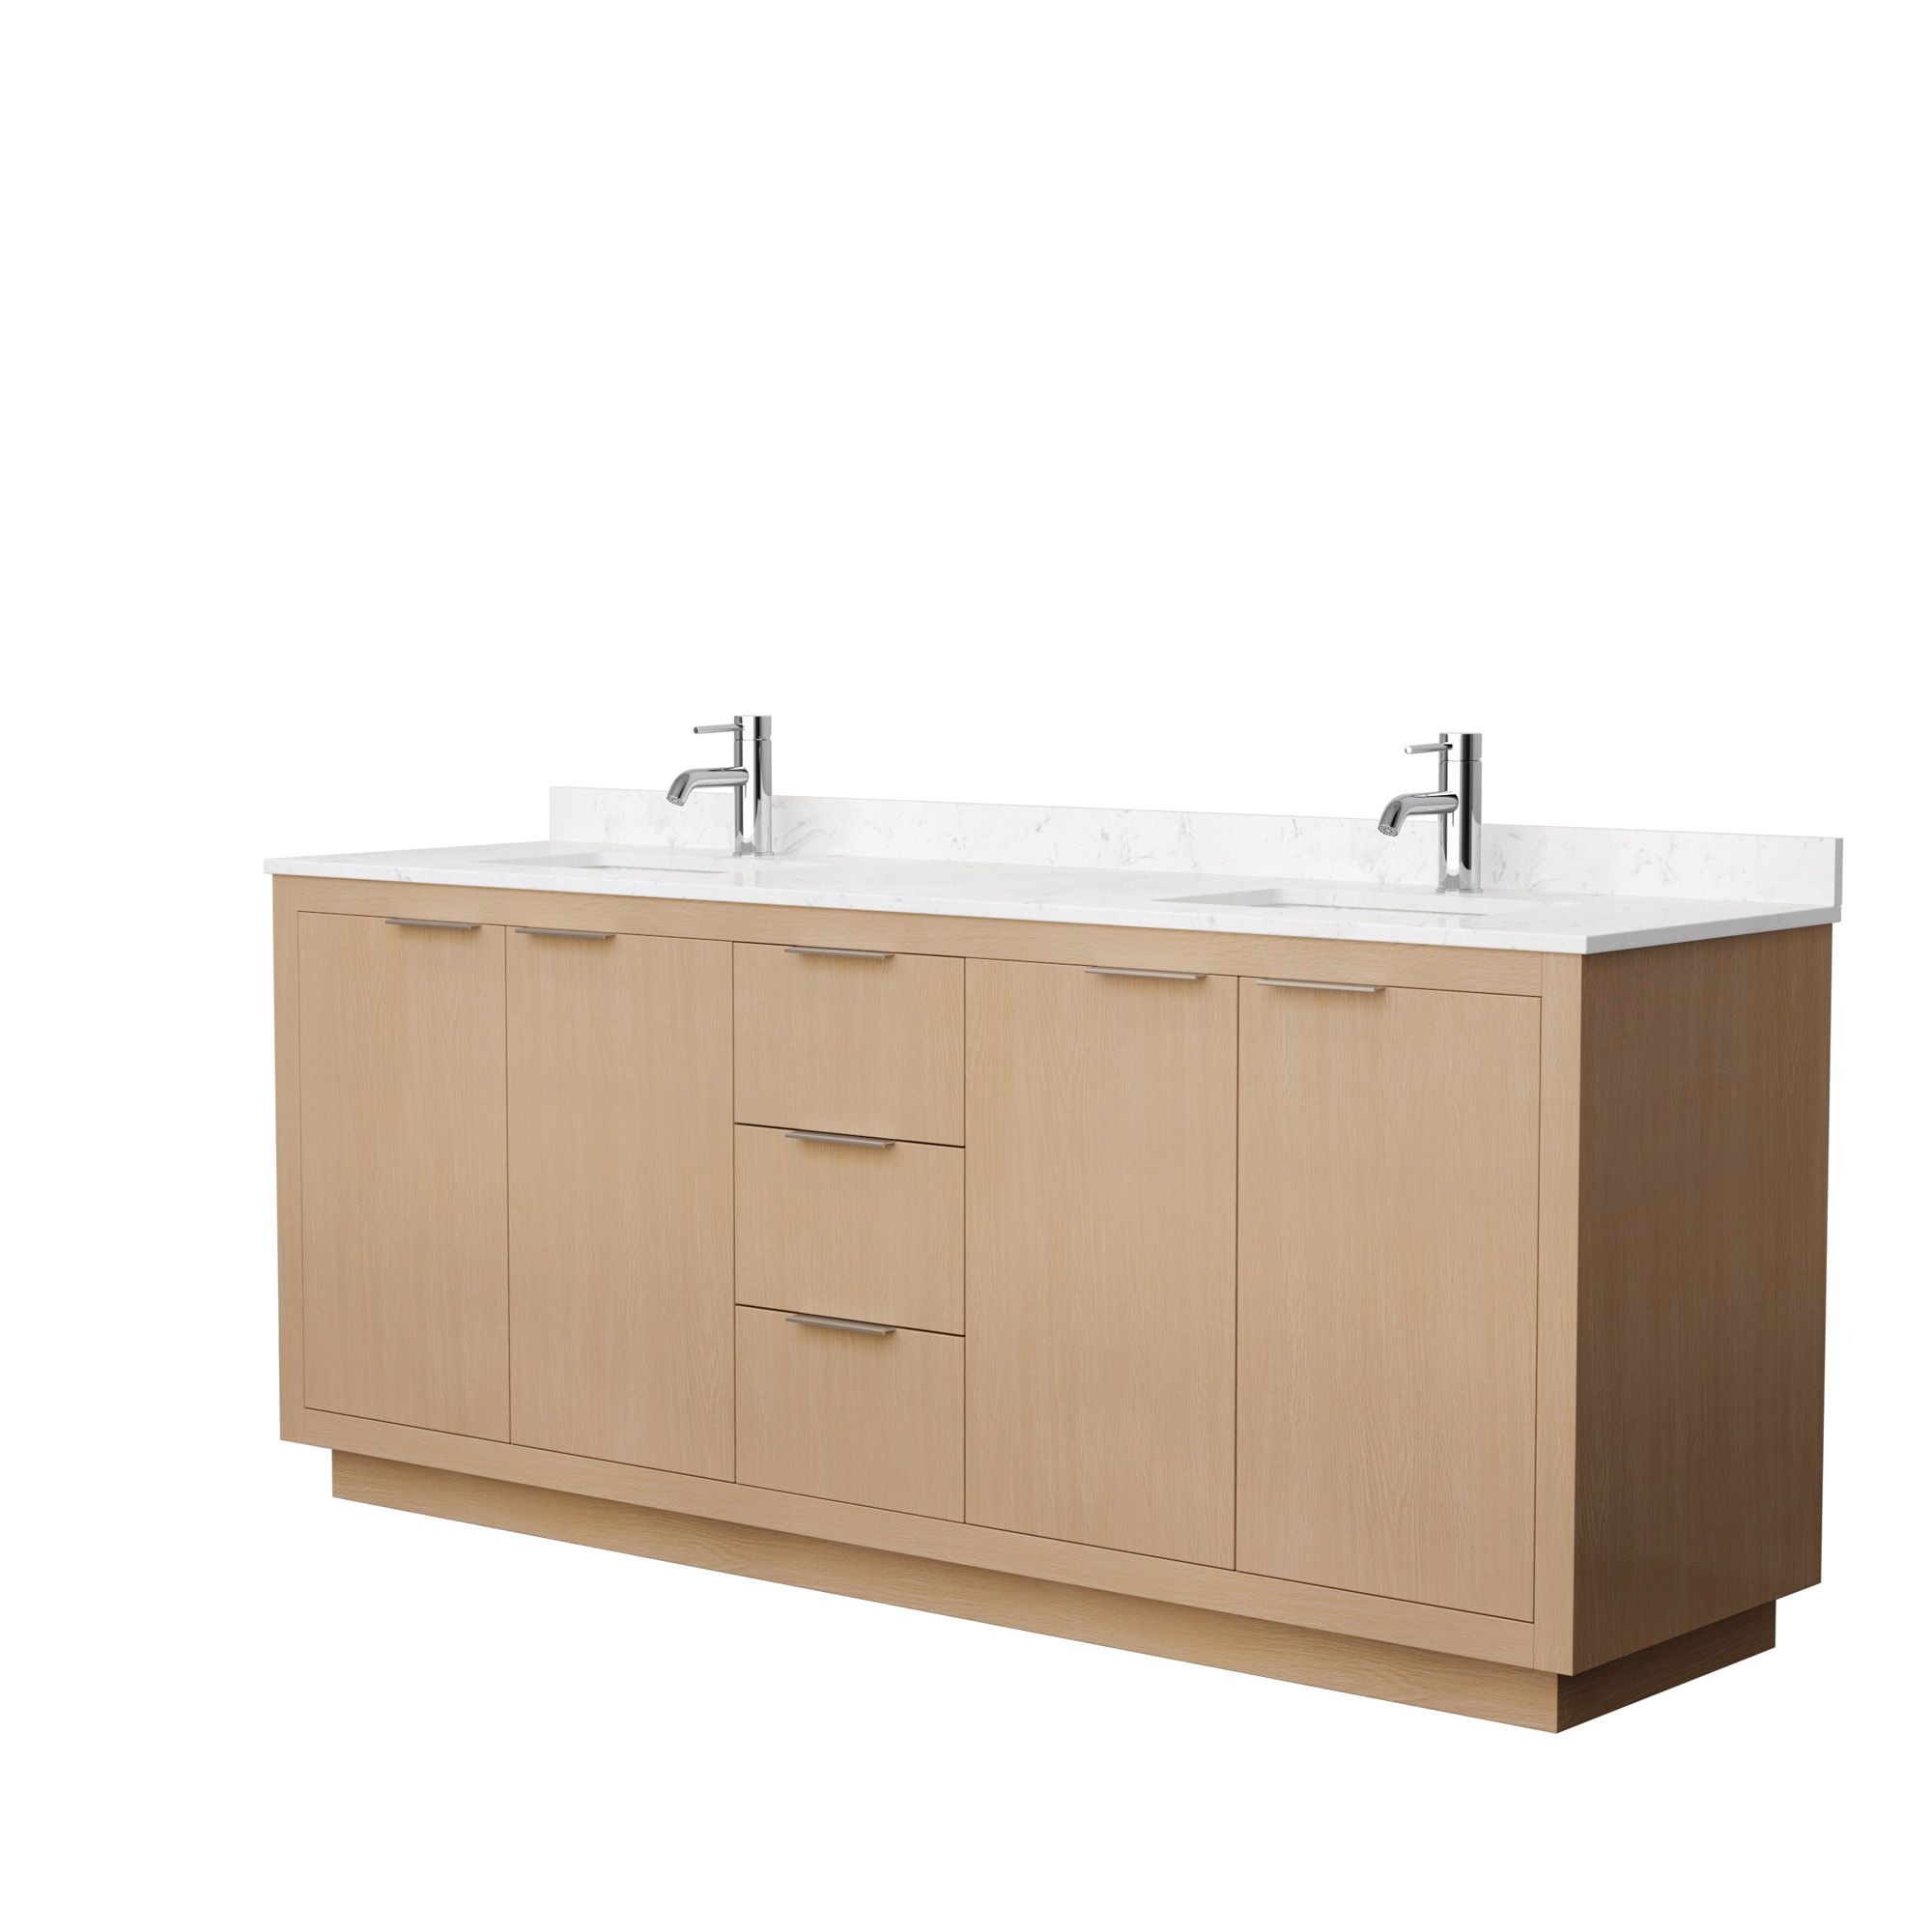 "80"" Double Bathroom Vanity in Light Straw with Countertop and Hardware Options"